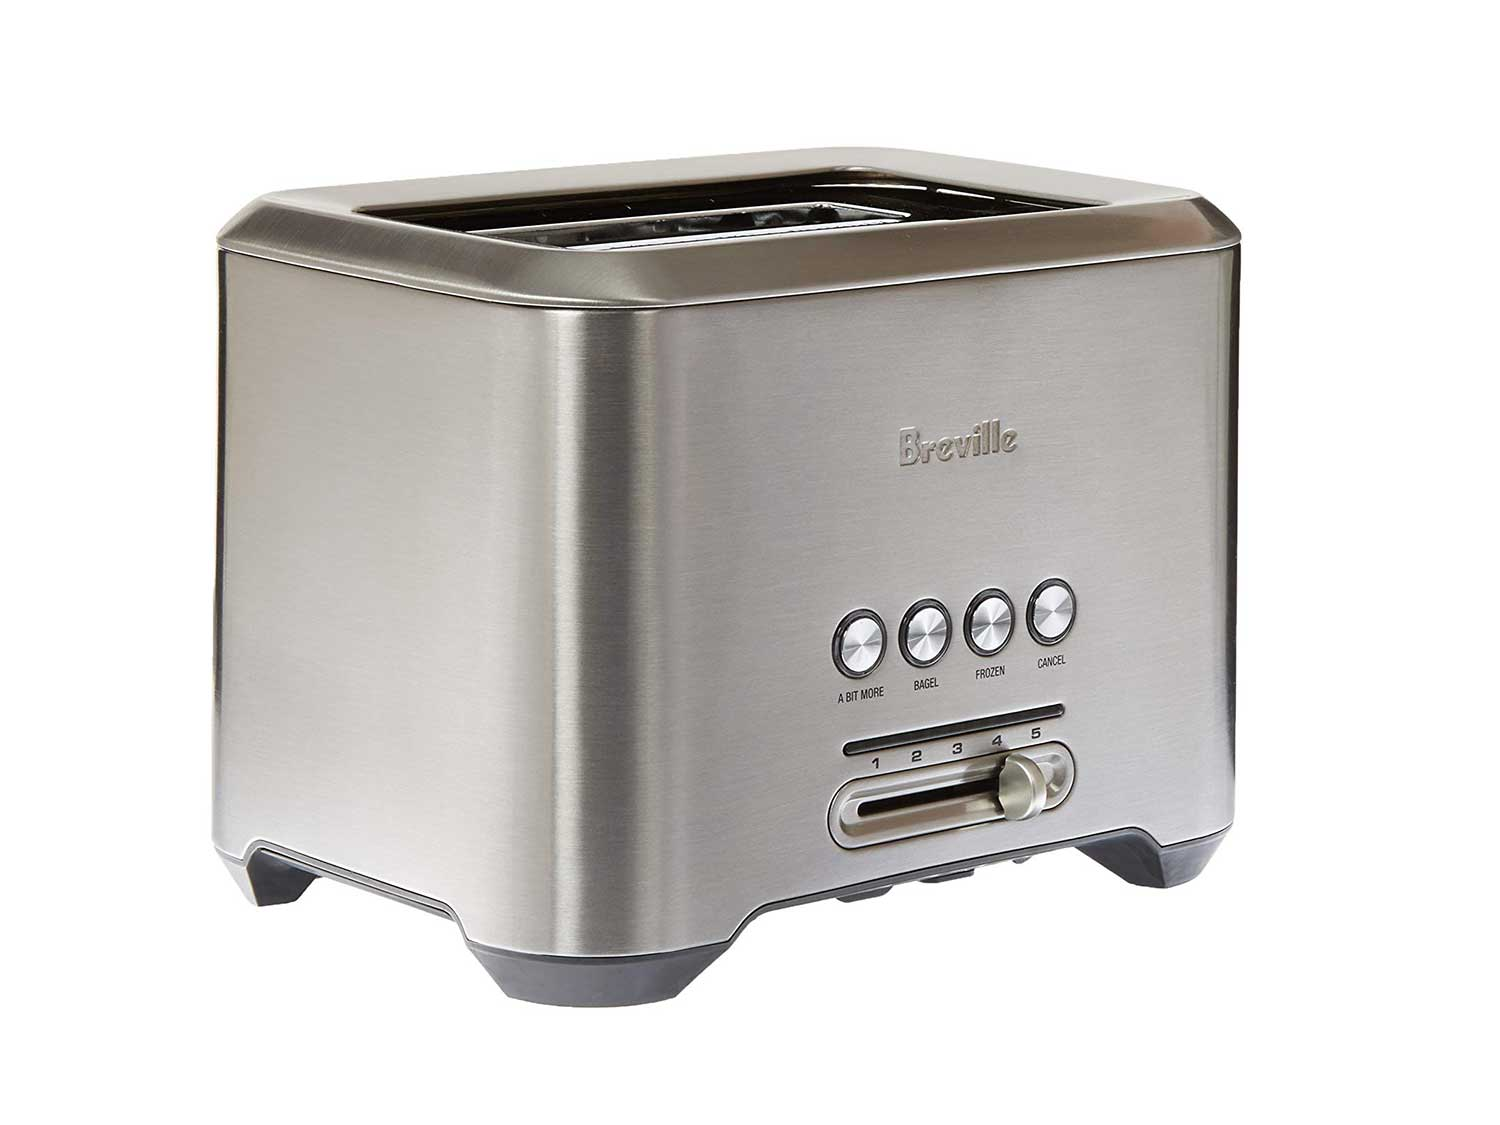 Breville The Bit More 4-Slice Toaster, 16.1 x 8.1 x 7.6 inches, Stainless Steel